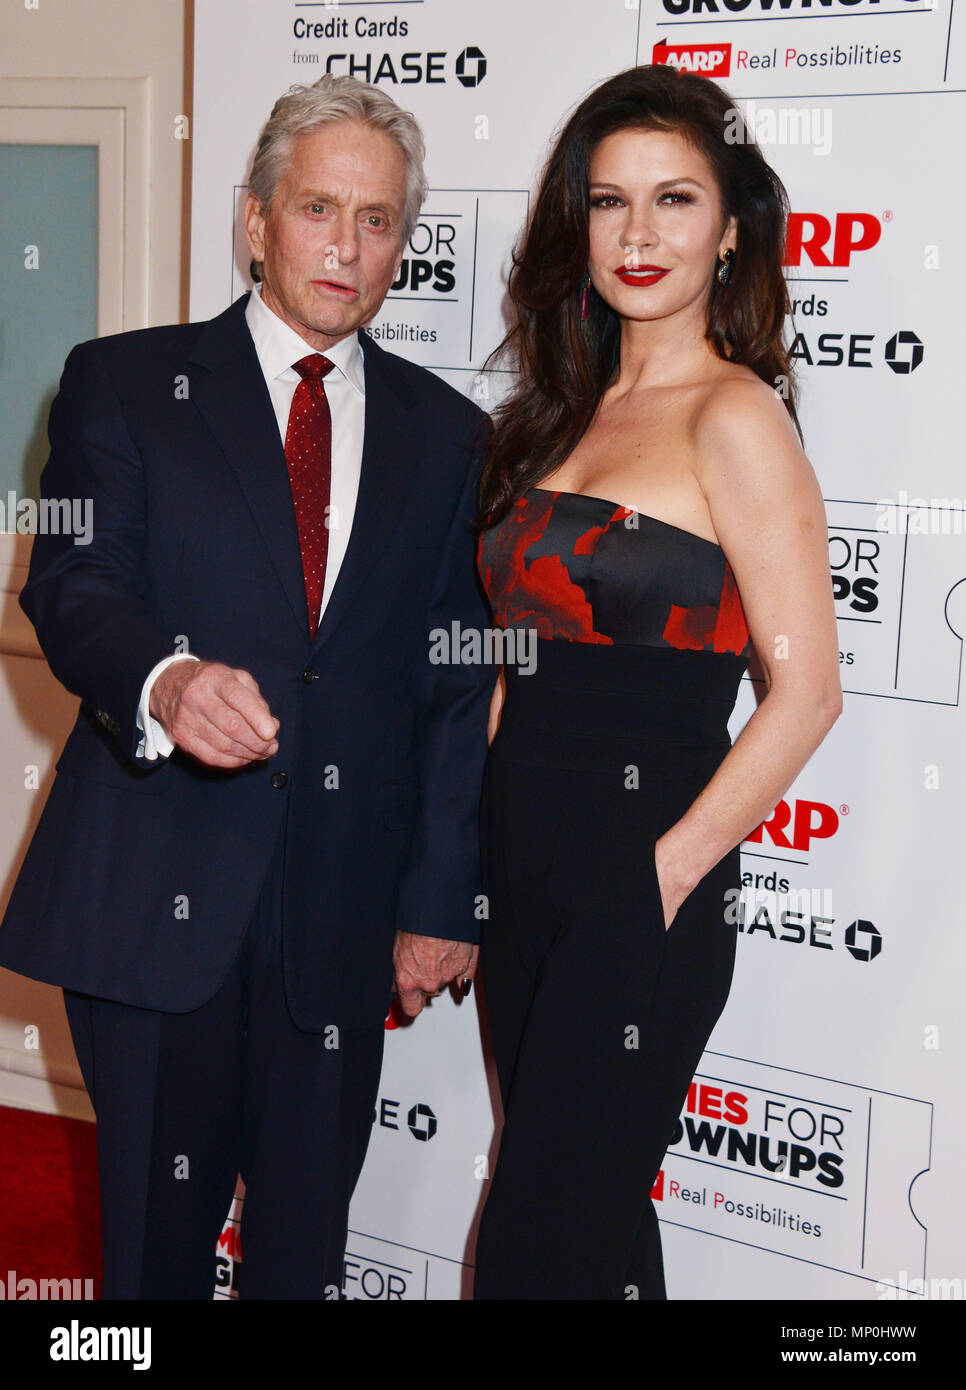 Michael Douglas, Catherine Zeta Jones 049 at the Movies For Grow Ups - AARP - at the Beverly Wilshire Hotel in Los Angeles. February 8, 2016.Michael Douglas, Catherine Zeta Jones 049 ------------- Red Carpet Event, Vertical, USA, Film Industry, Celebrities,  Photography, Bestof, Arts Culture and Entertainment, Topix Celebrities fashion /  Vertical, Best of, Event in Hollywood Life - California,  Red Carpet and backstage, USA, Film Industry, Celebrities,  movie celebrities, TV celebrities, Music celebrities, Photography, Bestof, Arts Culture and Entertainment,  Topix, vertical,  family from fro - Stock Image